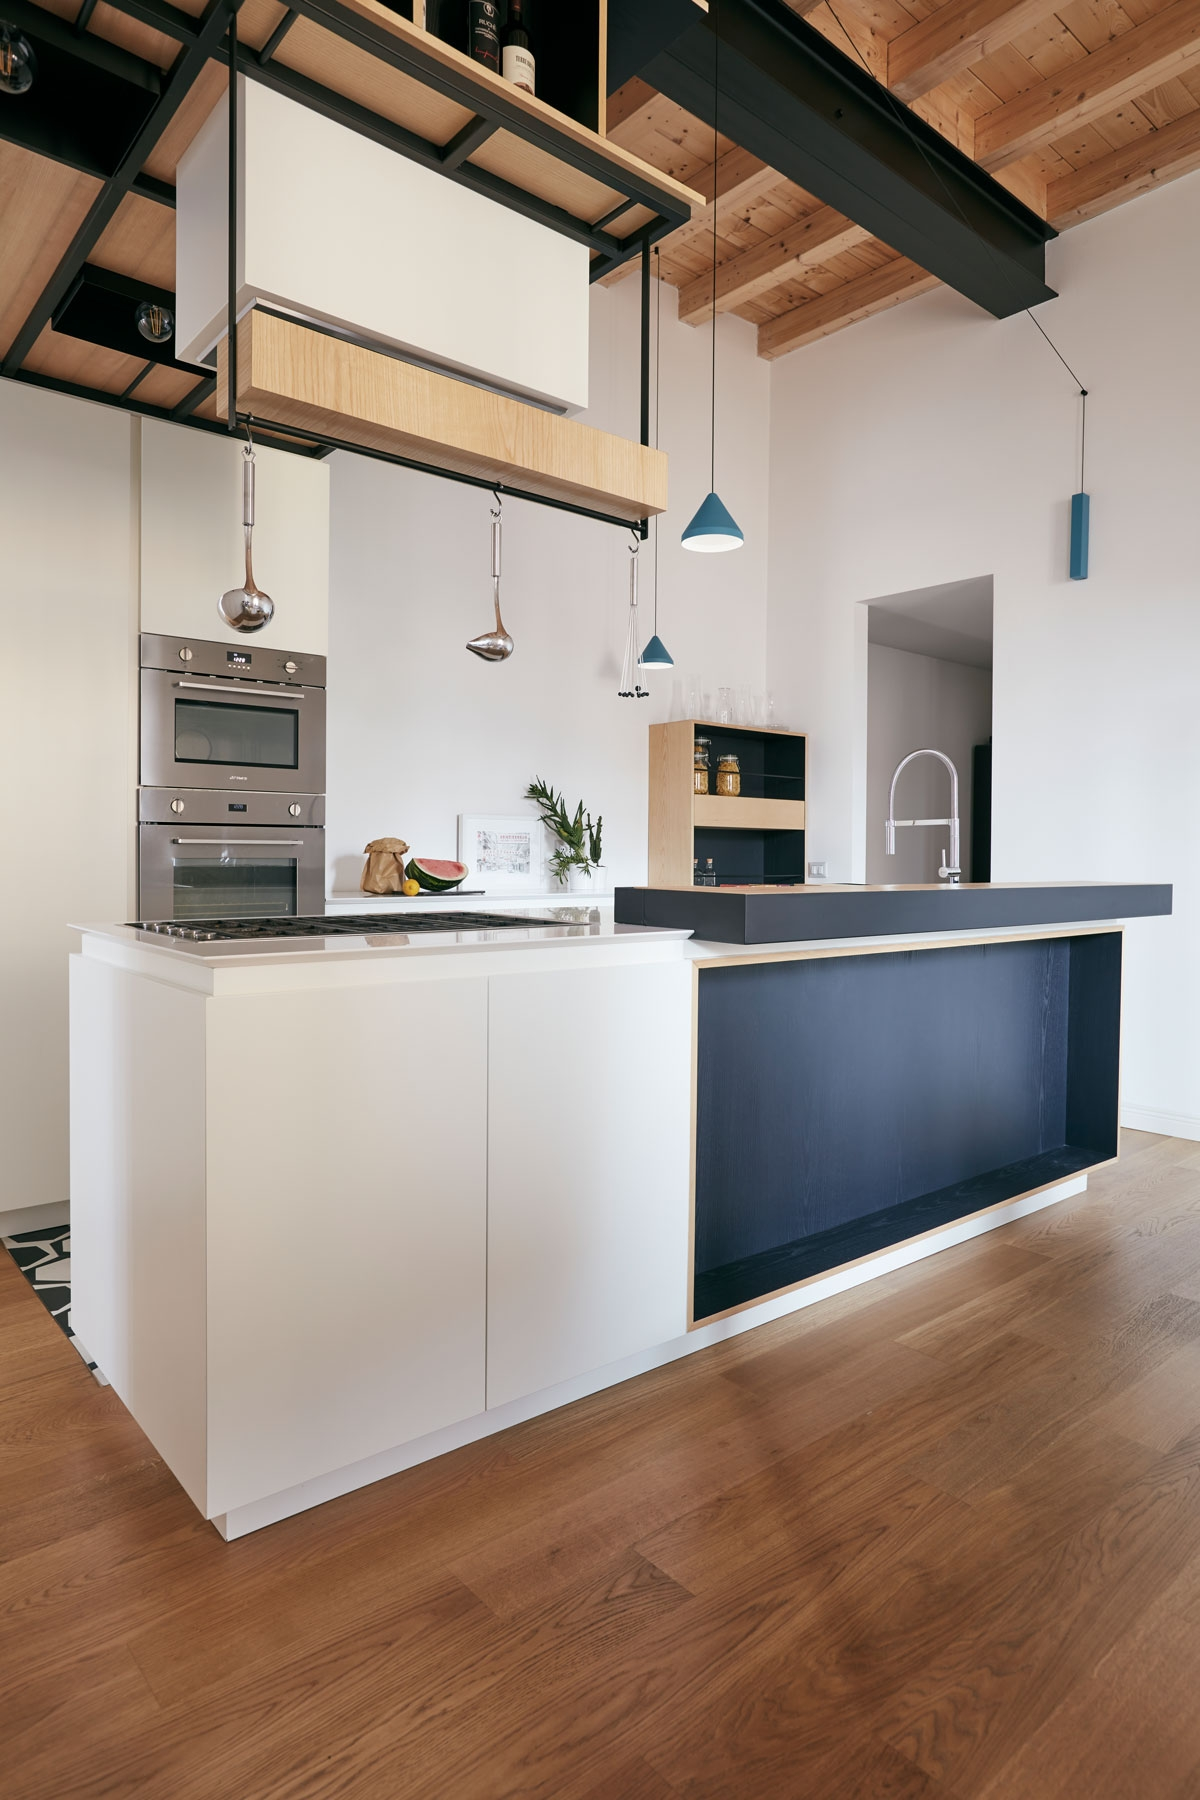 Vibia The Edit - Designers Select Vibia for a Residence in Legnano - North